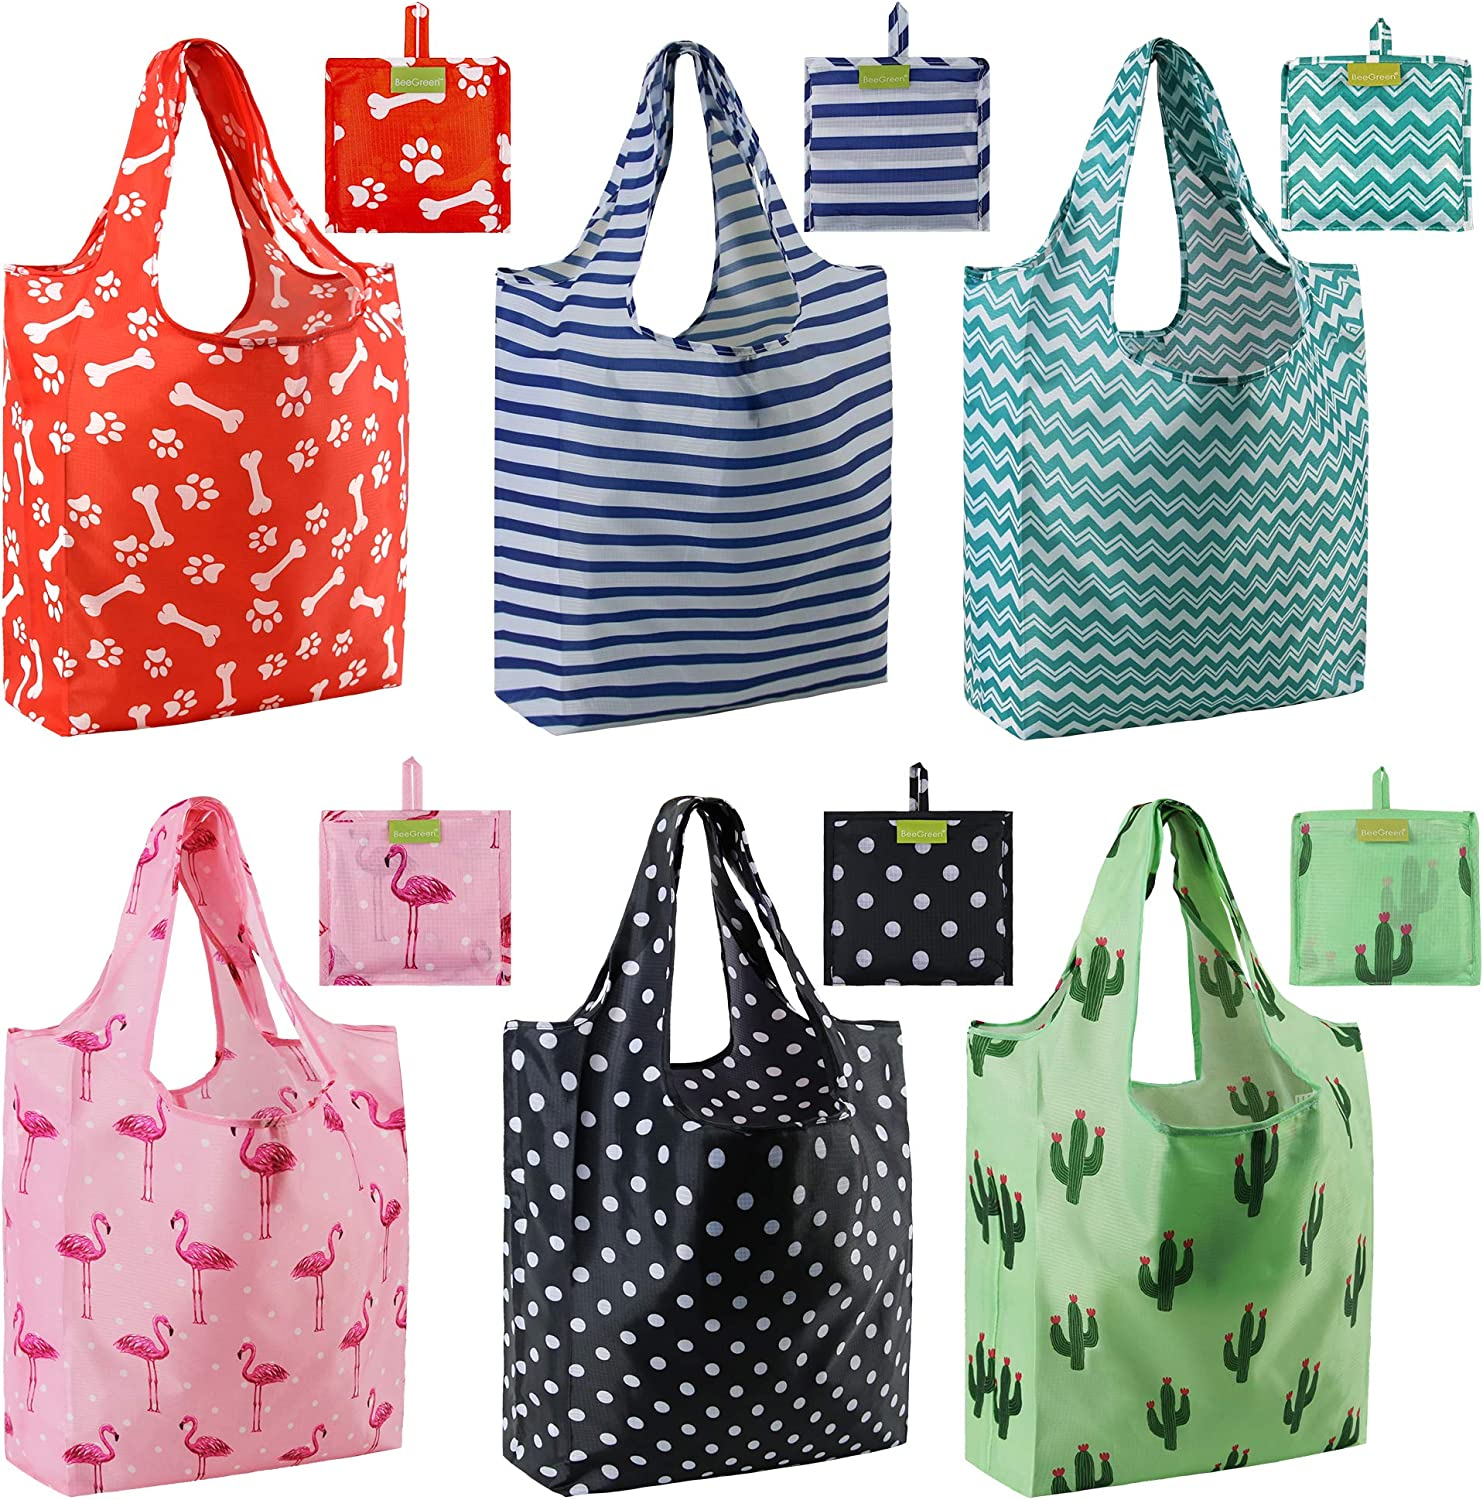 Tote Bags Groceries Reusable Gift Bags Mixed Bags Designs for Shopping RIPstop 50LBS XLarge Machine Washable Fashion Bags with Pouch Dog Paw Cactus Flamingo Stripes Dots …